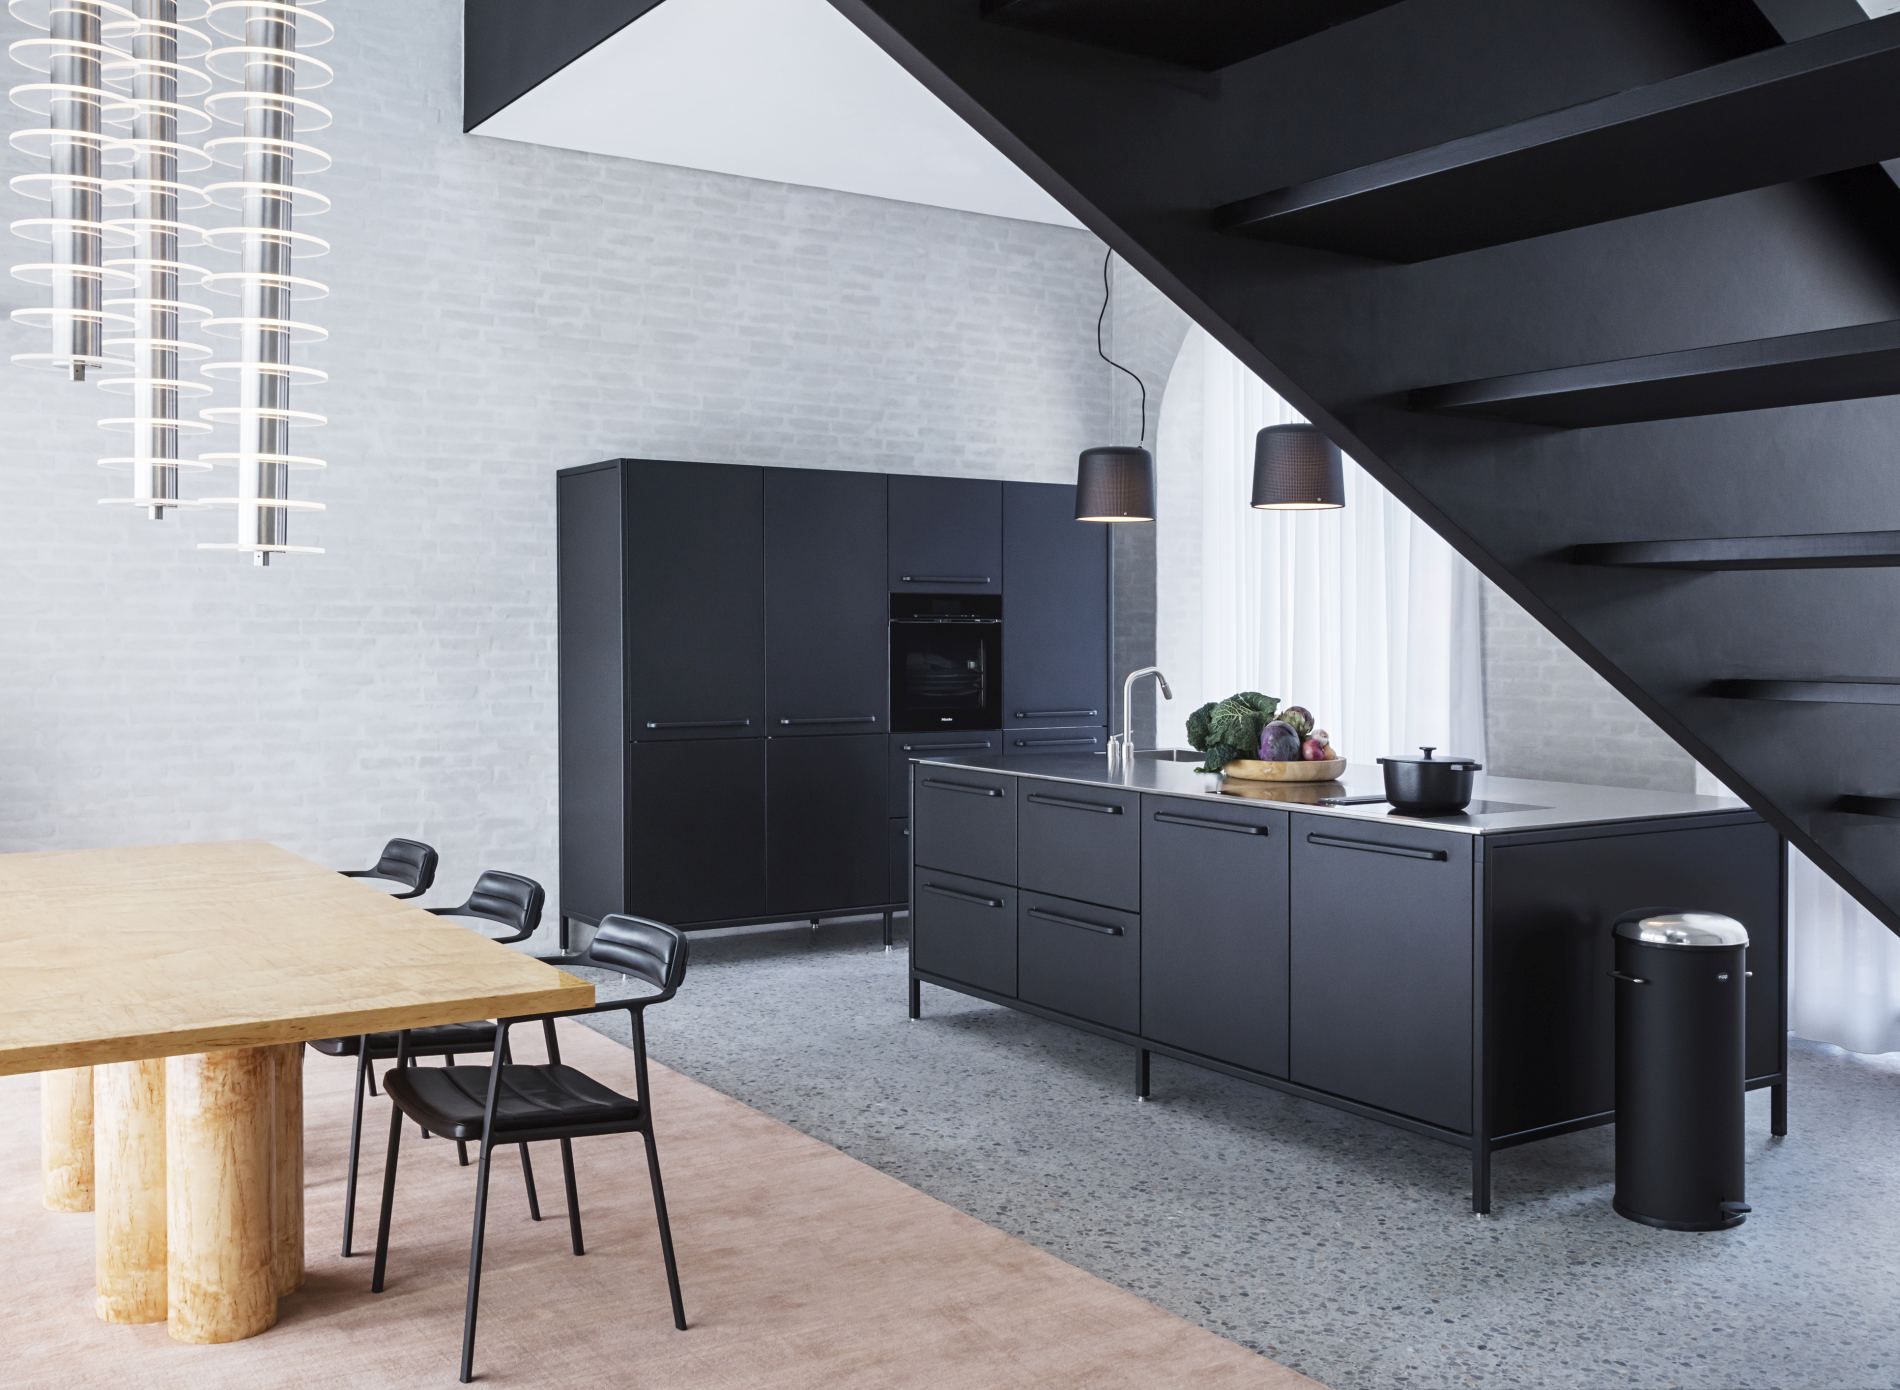 Kitchen  VIPP Chimney House  Minimal Select